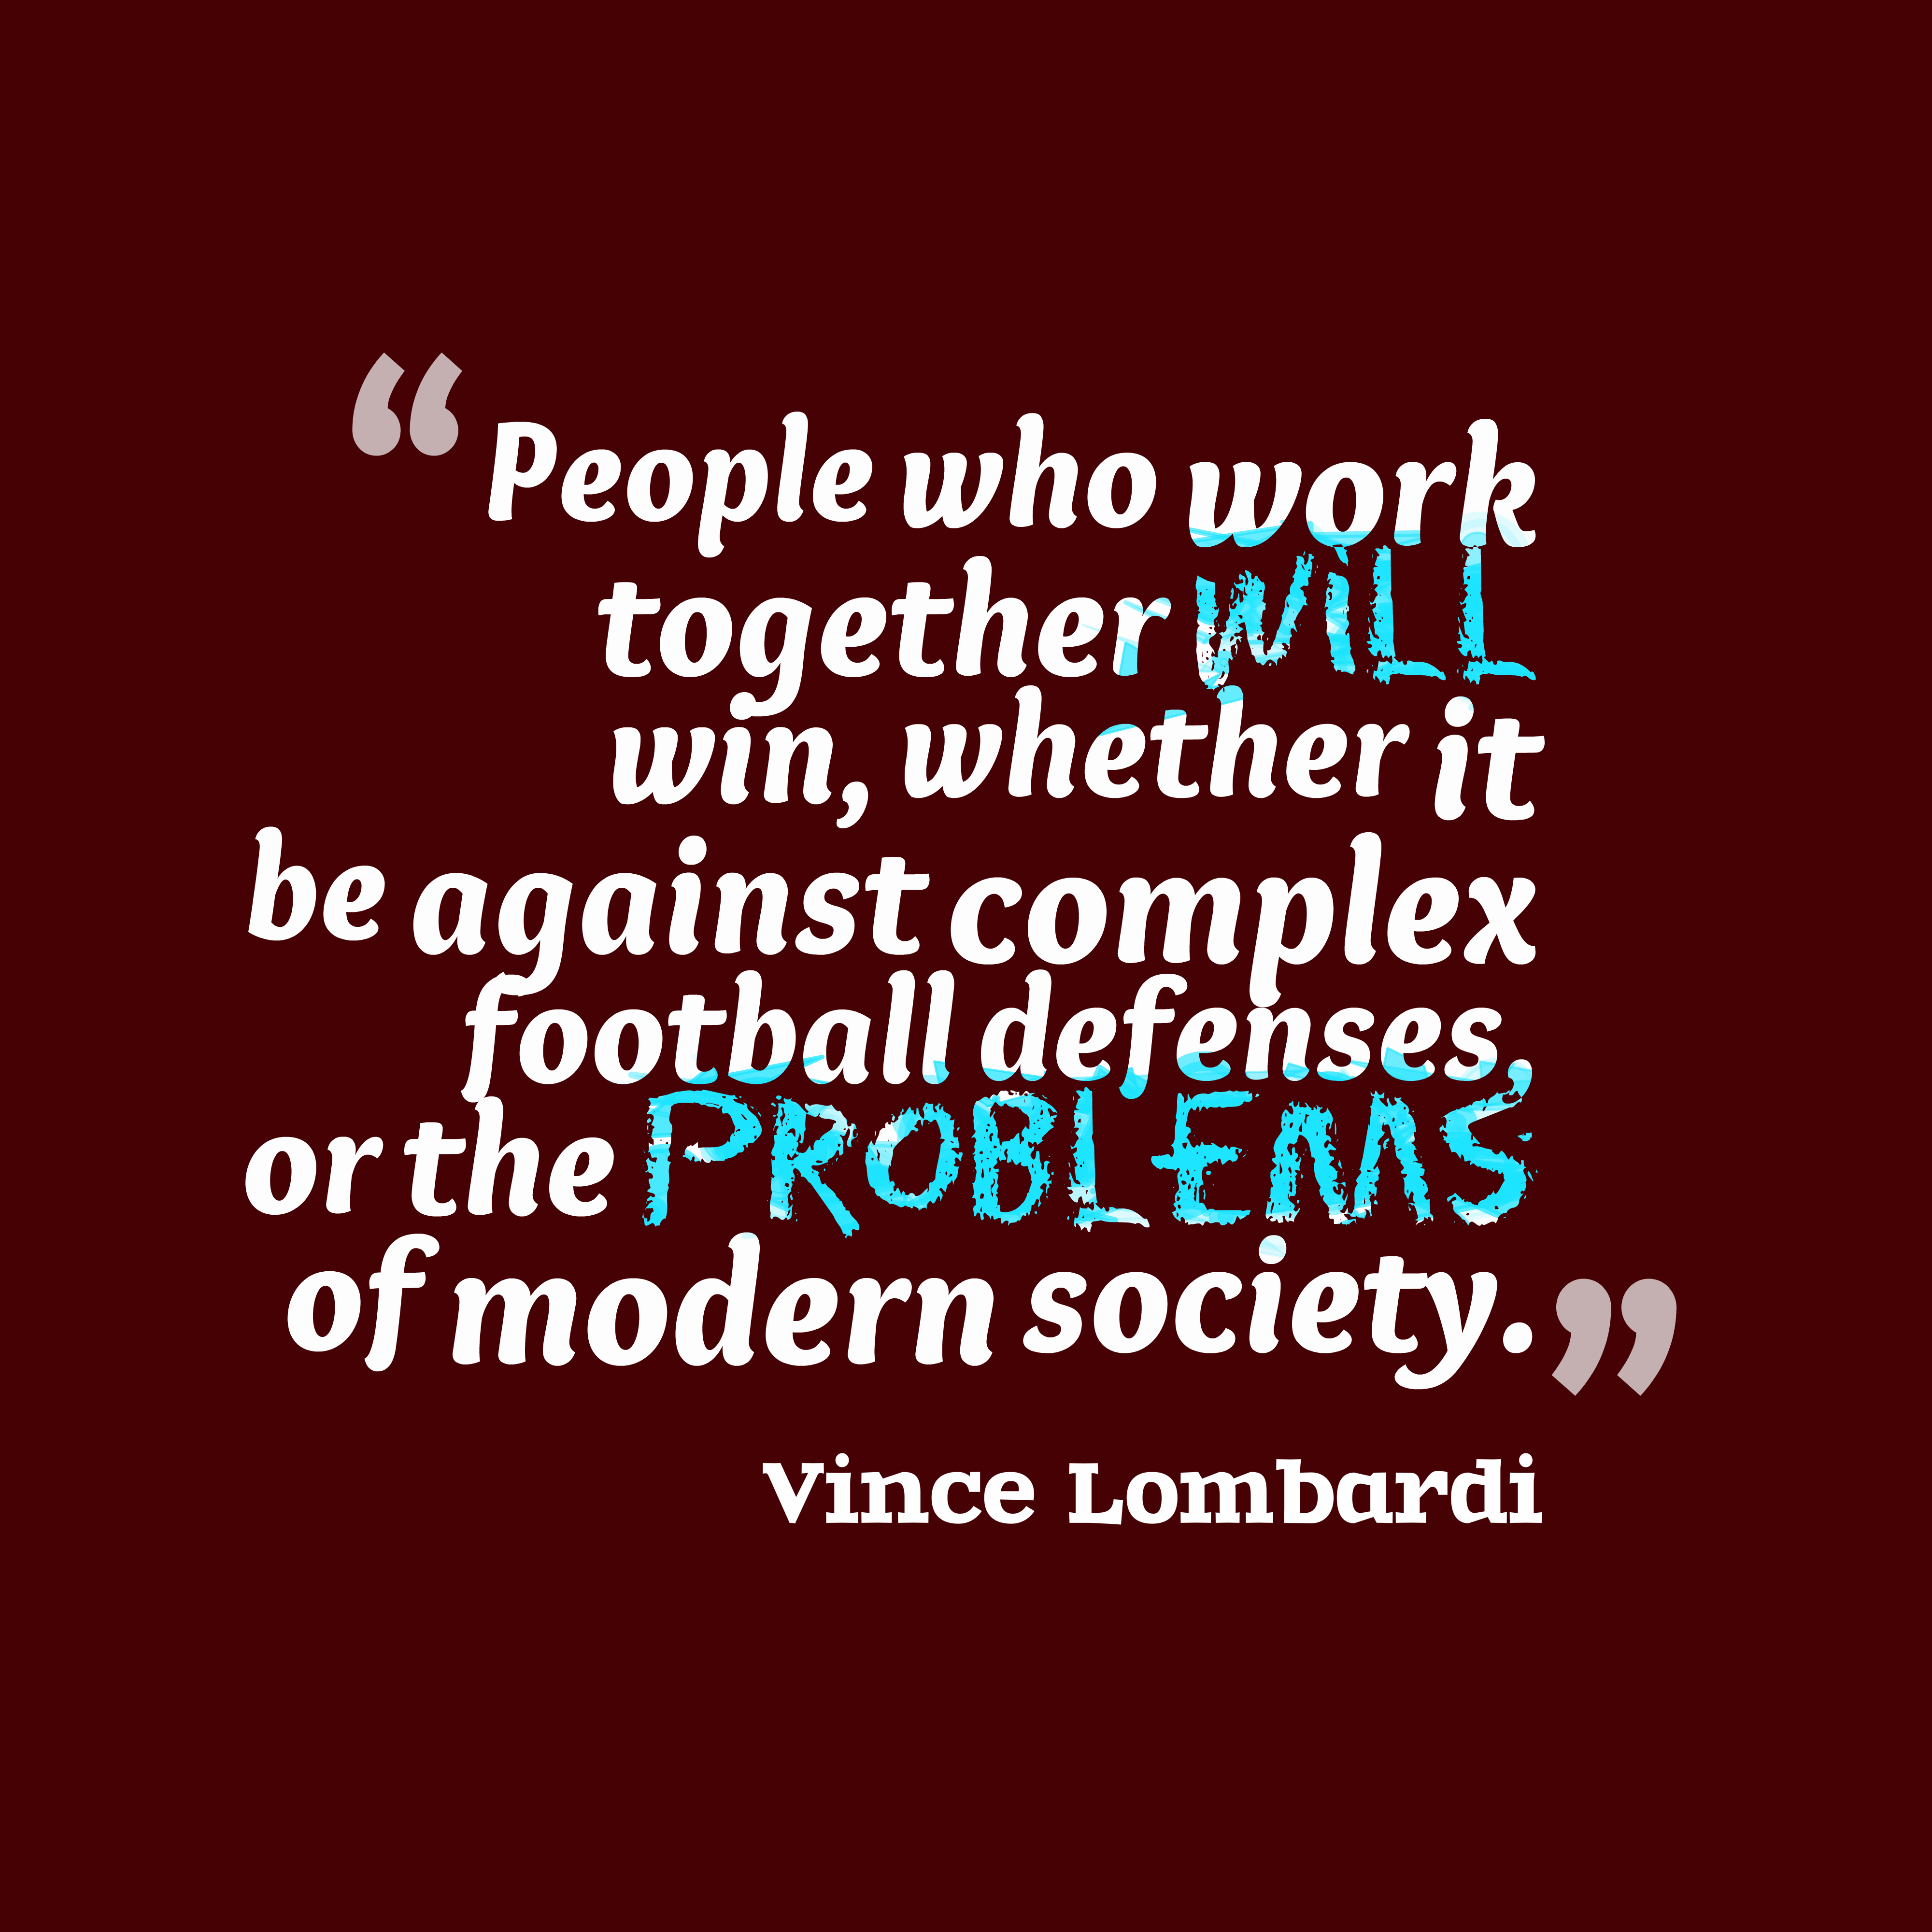 Quotes image of People who work together will win, whether it be against complex football defenses, or the problems of modern society.